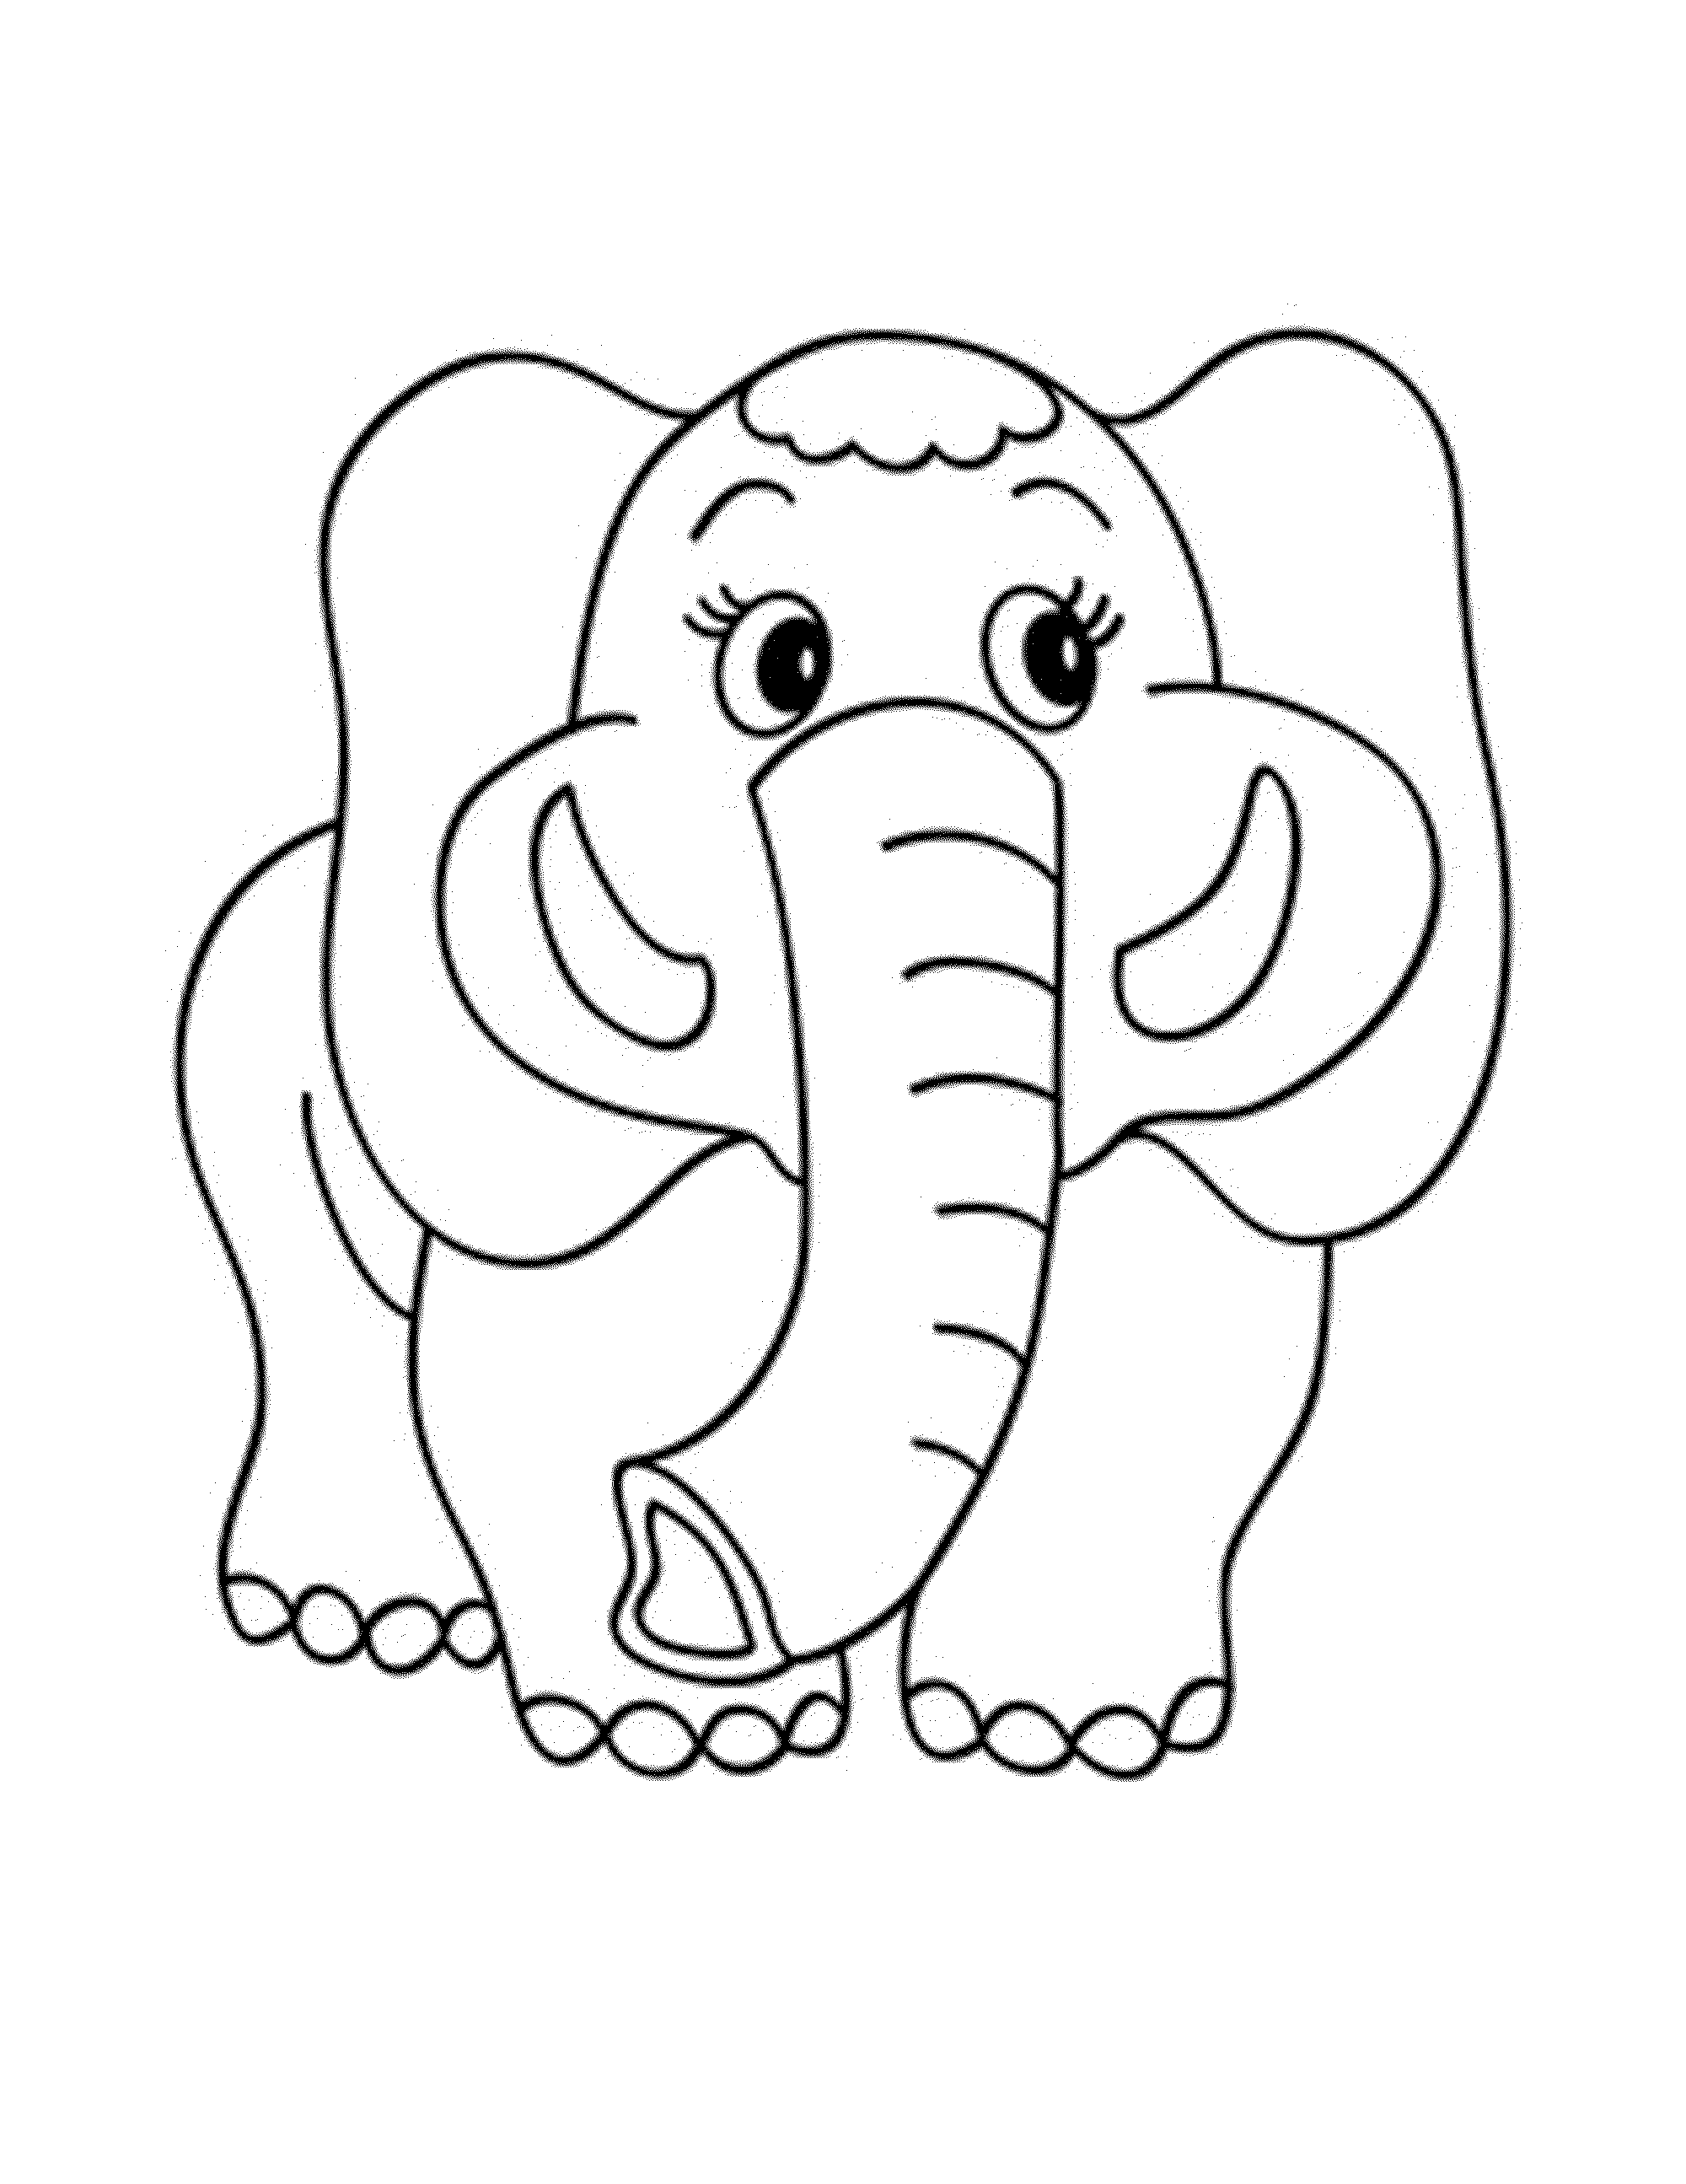 elephant coloring pages print download teaching kids through elephant coloring elephant pages coloring